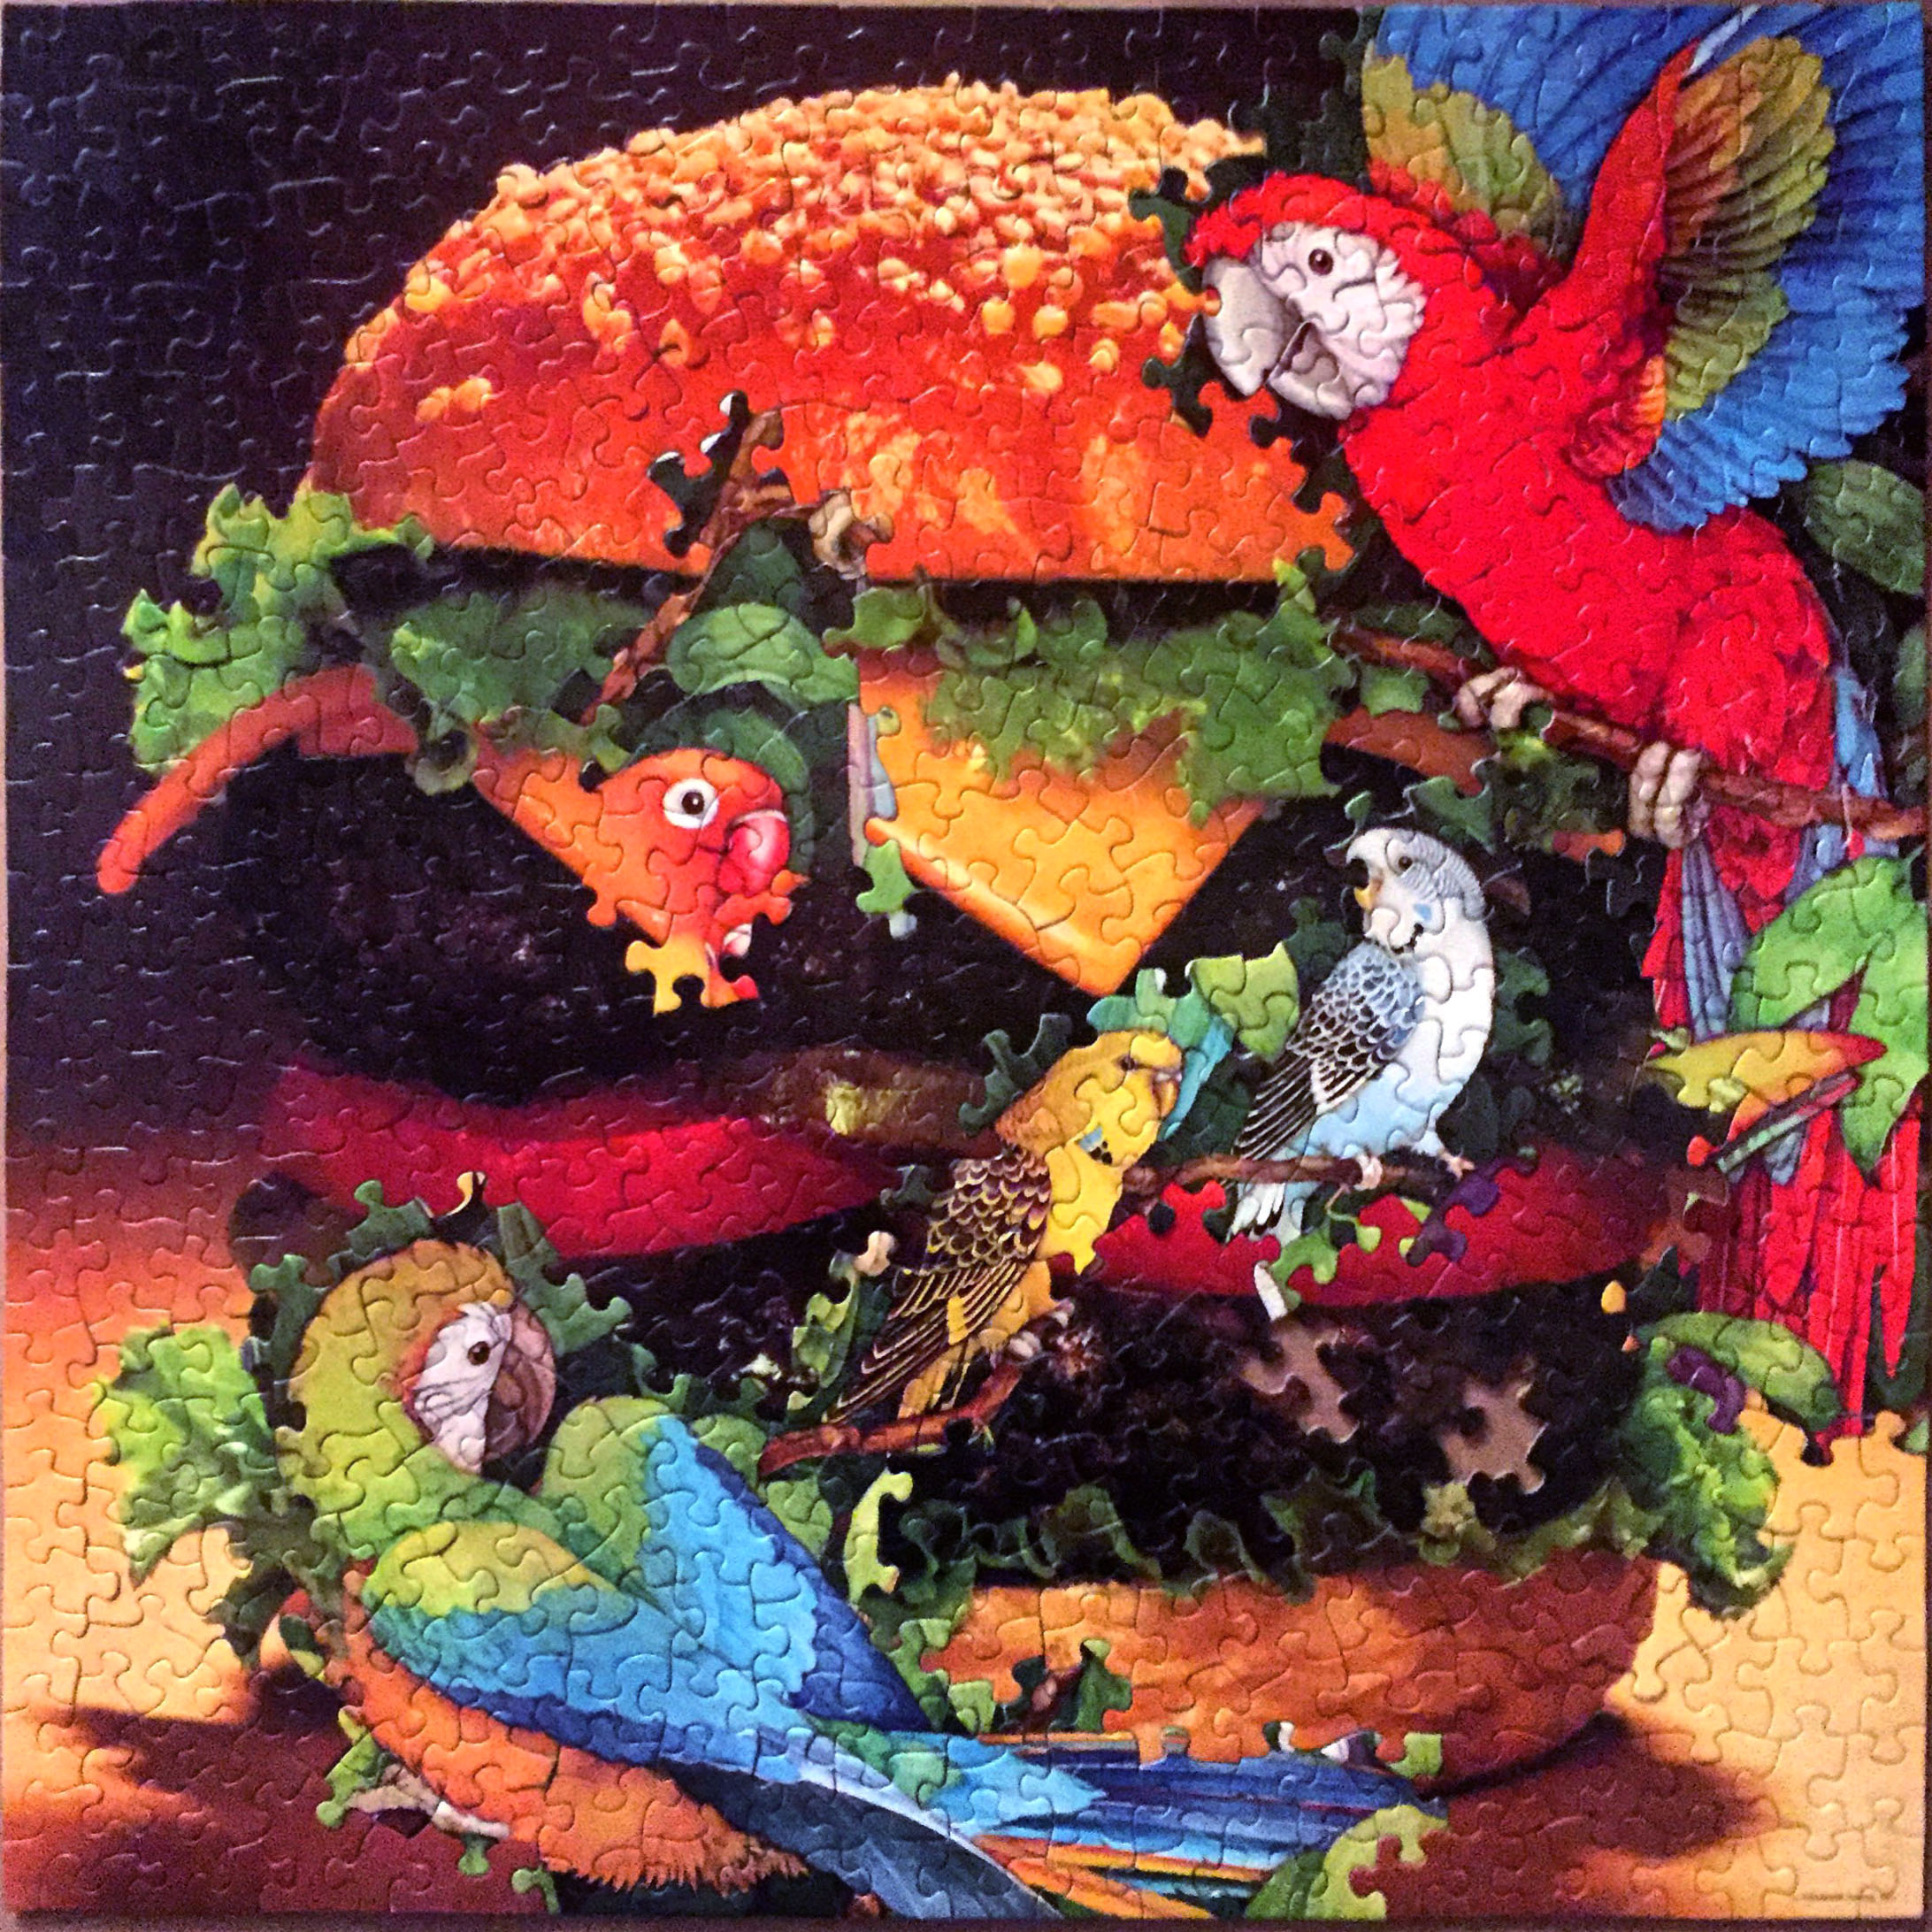 Parrot Burger Party, jigsaw puzzle collage, vintage jigsaw puzzles